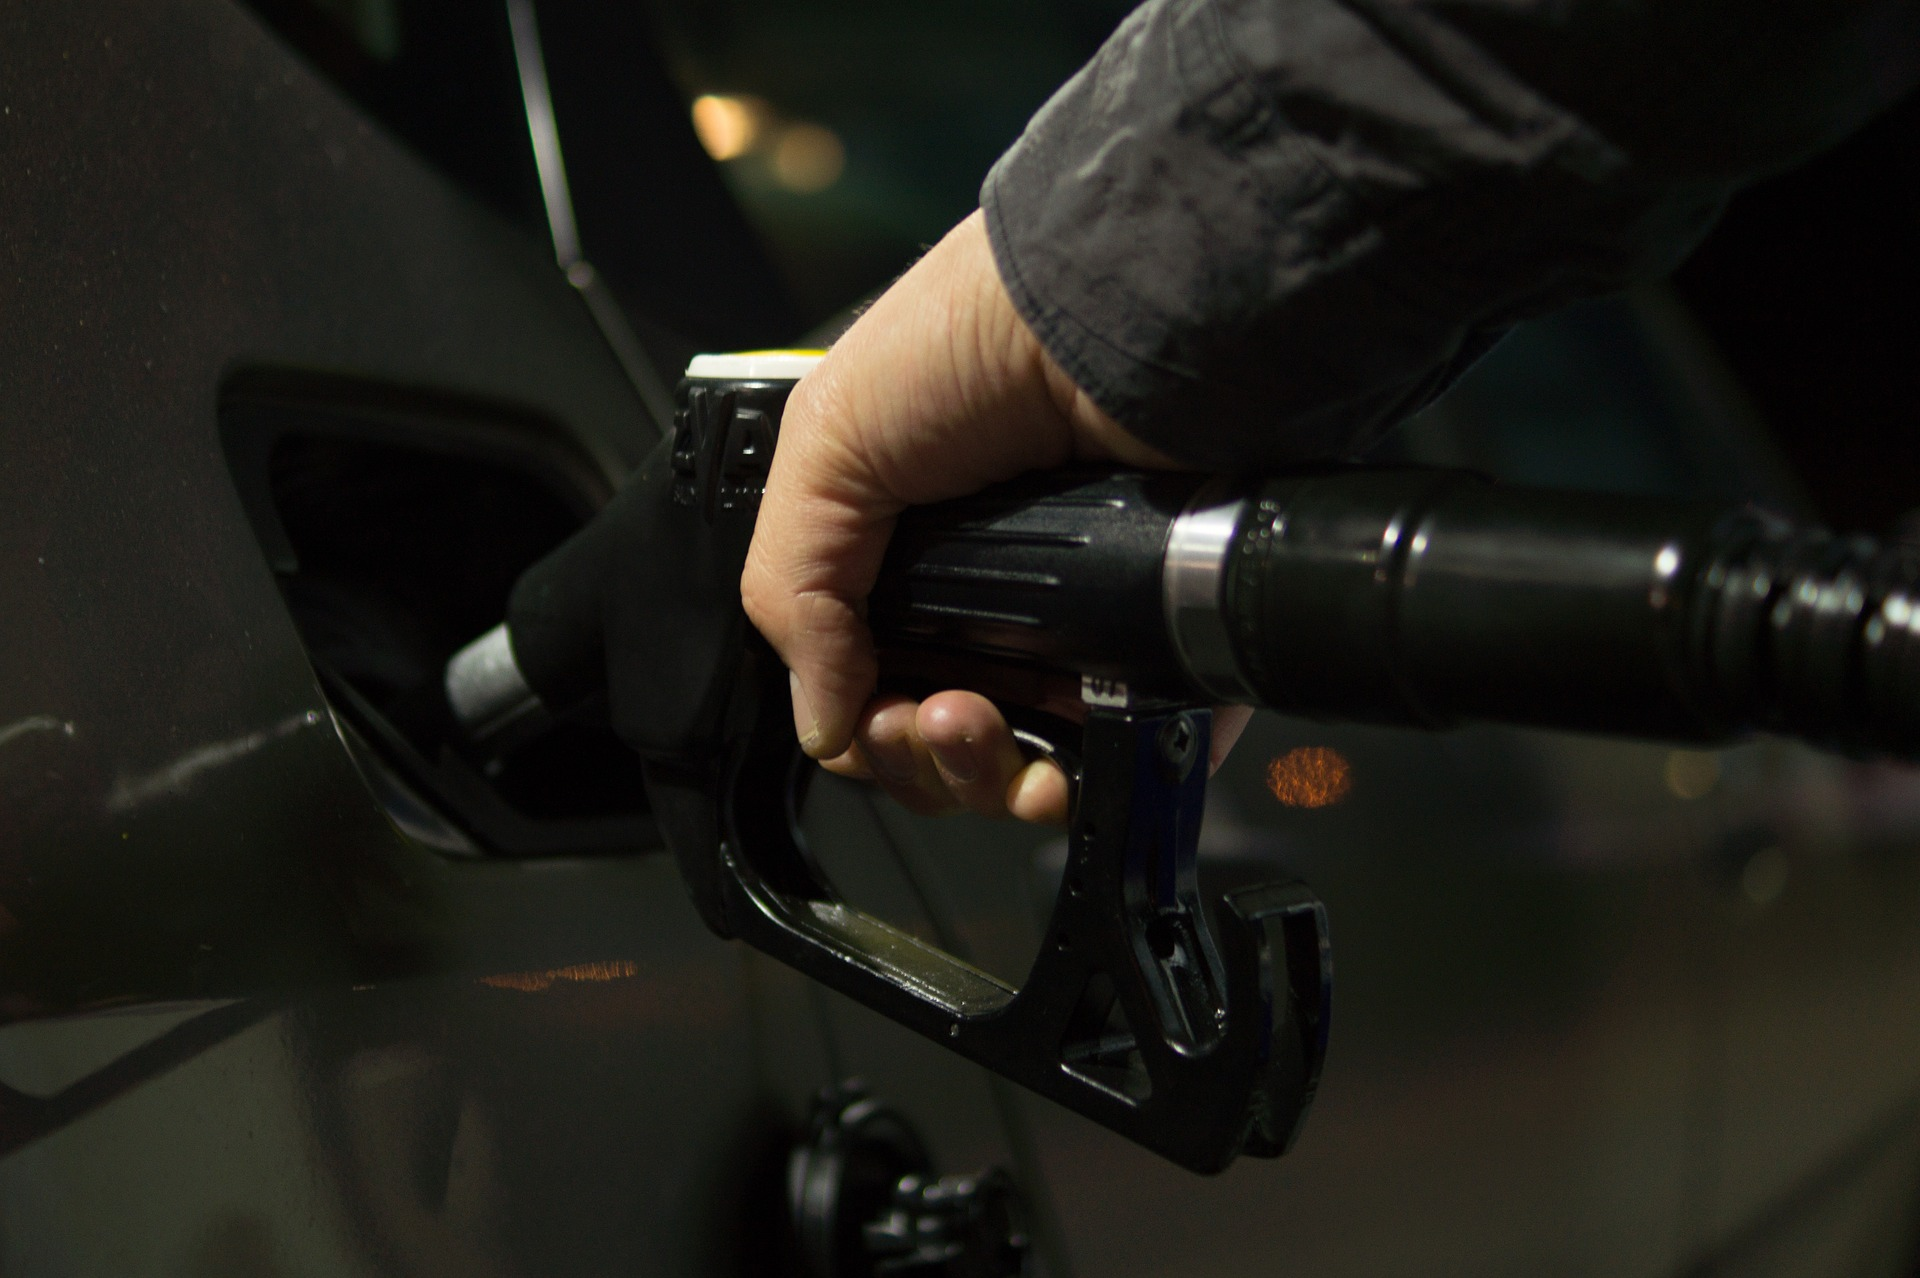 keeping your fuel pumps safe